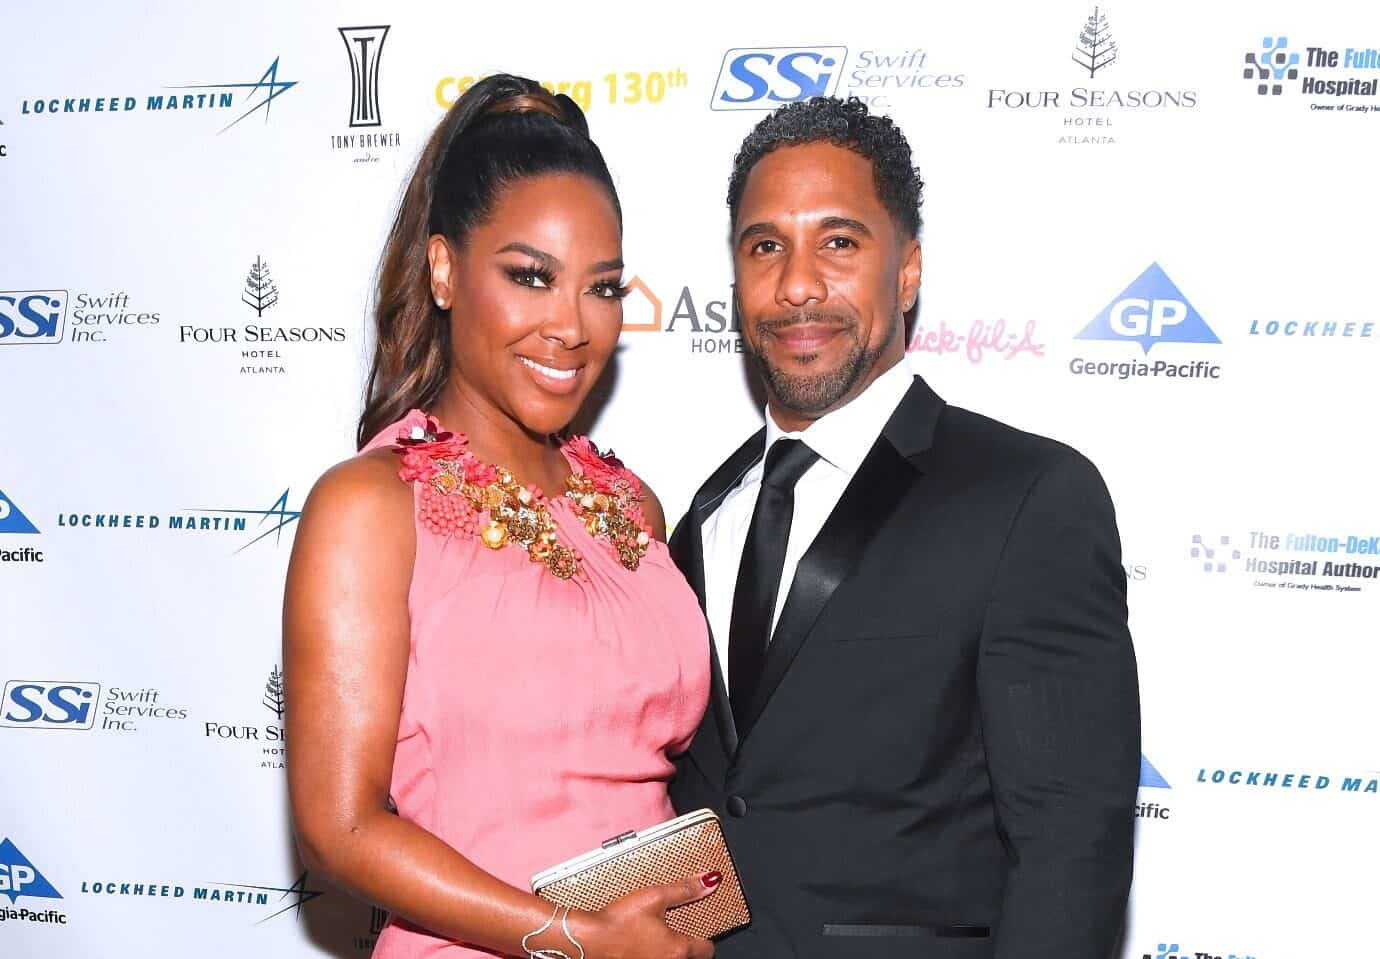 Kenya Moore Shares Update on Marc Daly's Divorce Filing and Claims He Never Asked For Alimony, Clarifies Her Issue With RHOA Costar LaToya, Plus Shares the Song Marc Sent